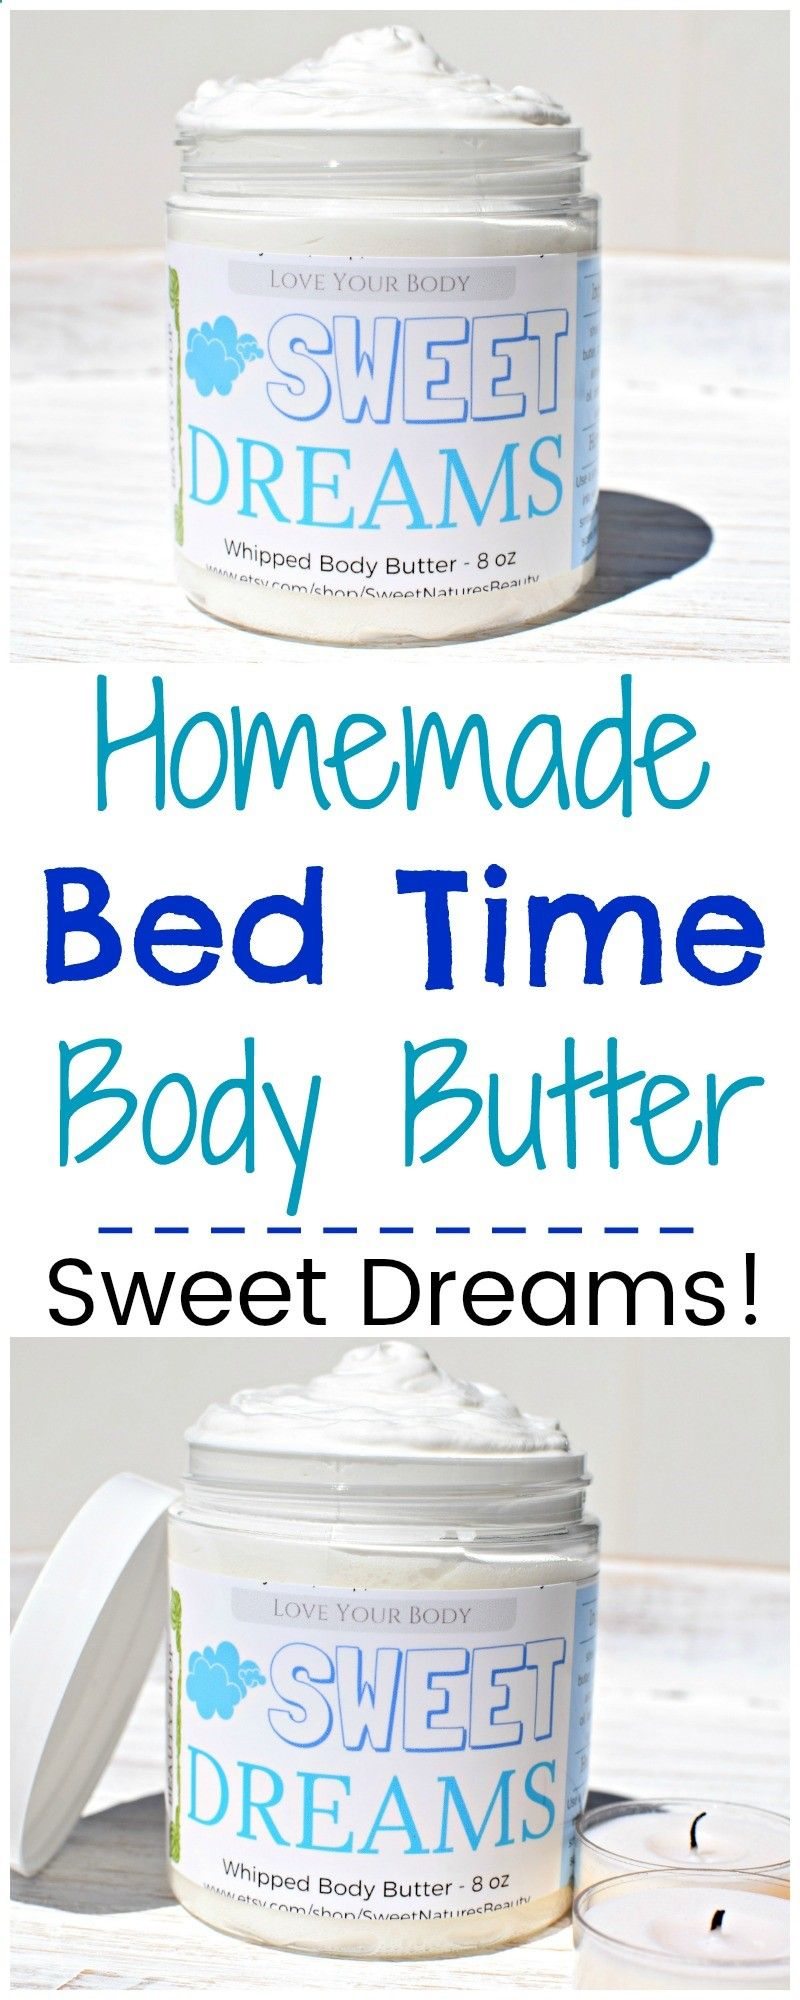 This homemade bed time body butter has an essential oil blend that will help you relax! The shea butter and coconut oil is great for natural beauty. Homemade lotion for dry skin.